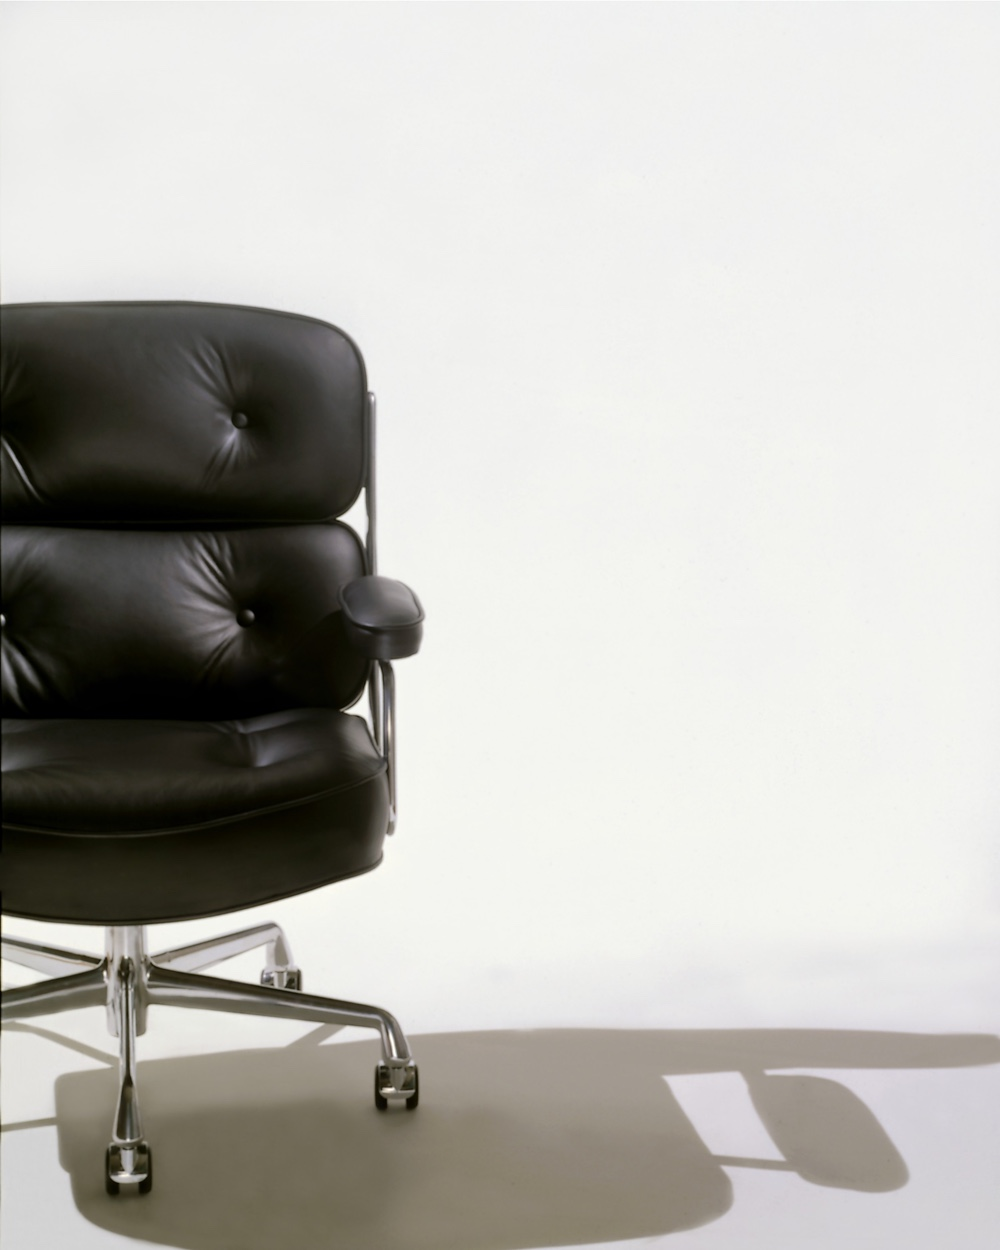 Eames Executive Chair in black leather